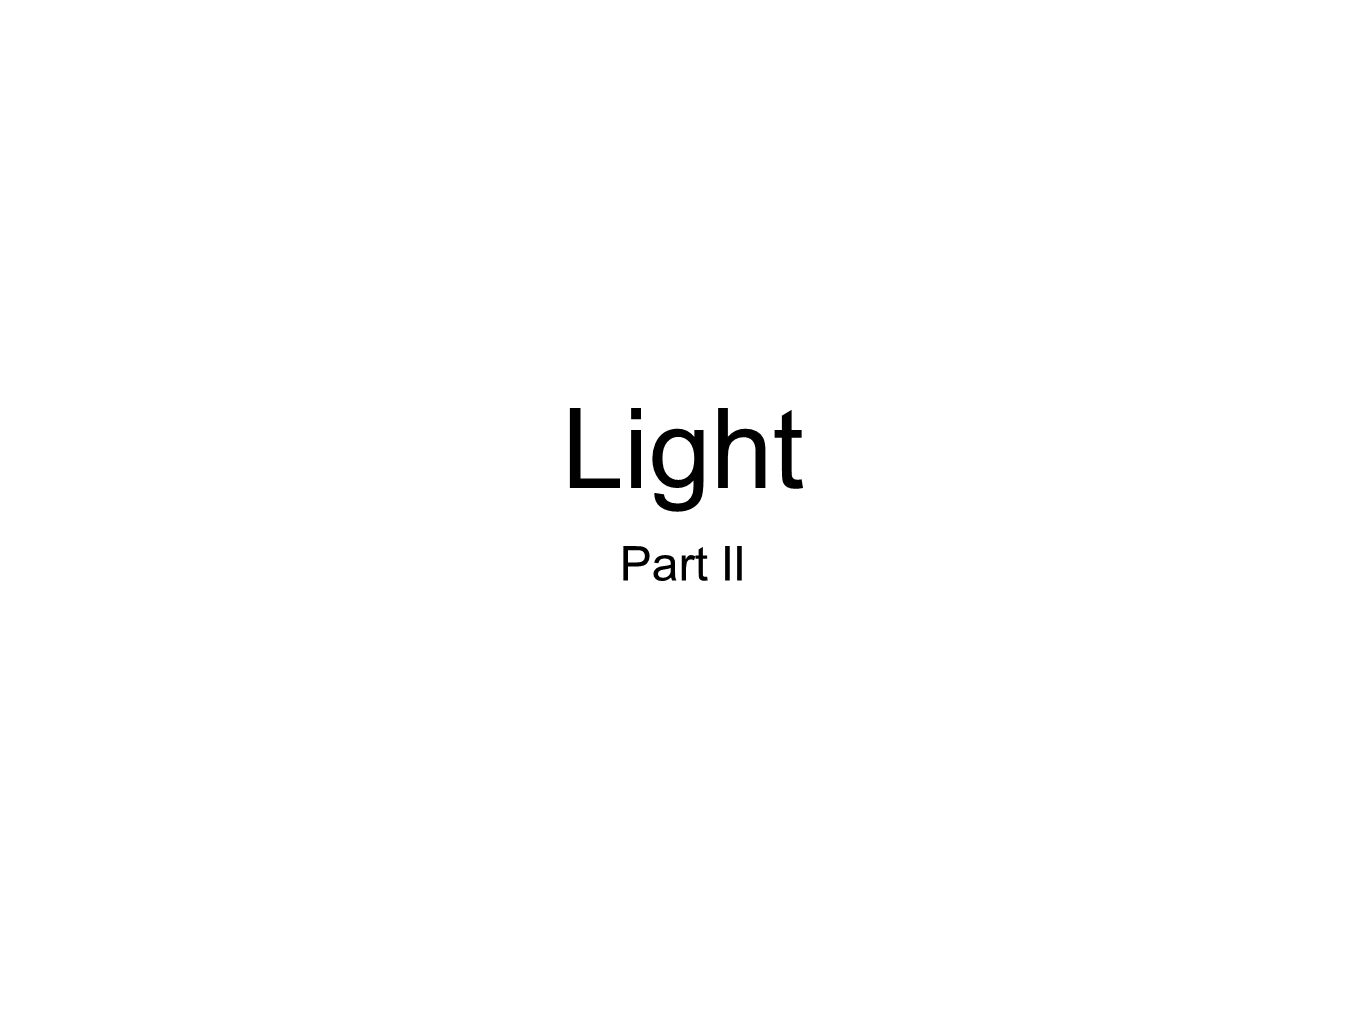 Light Part II